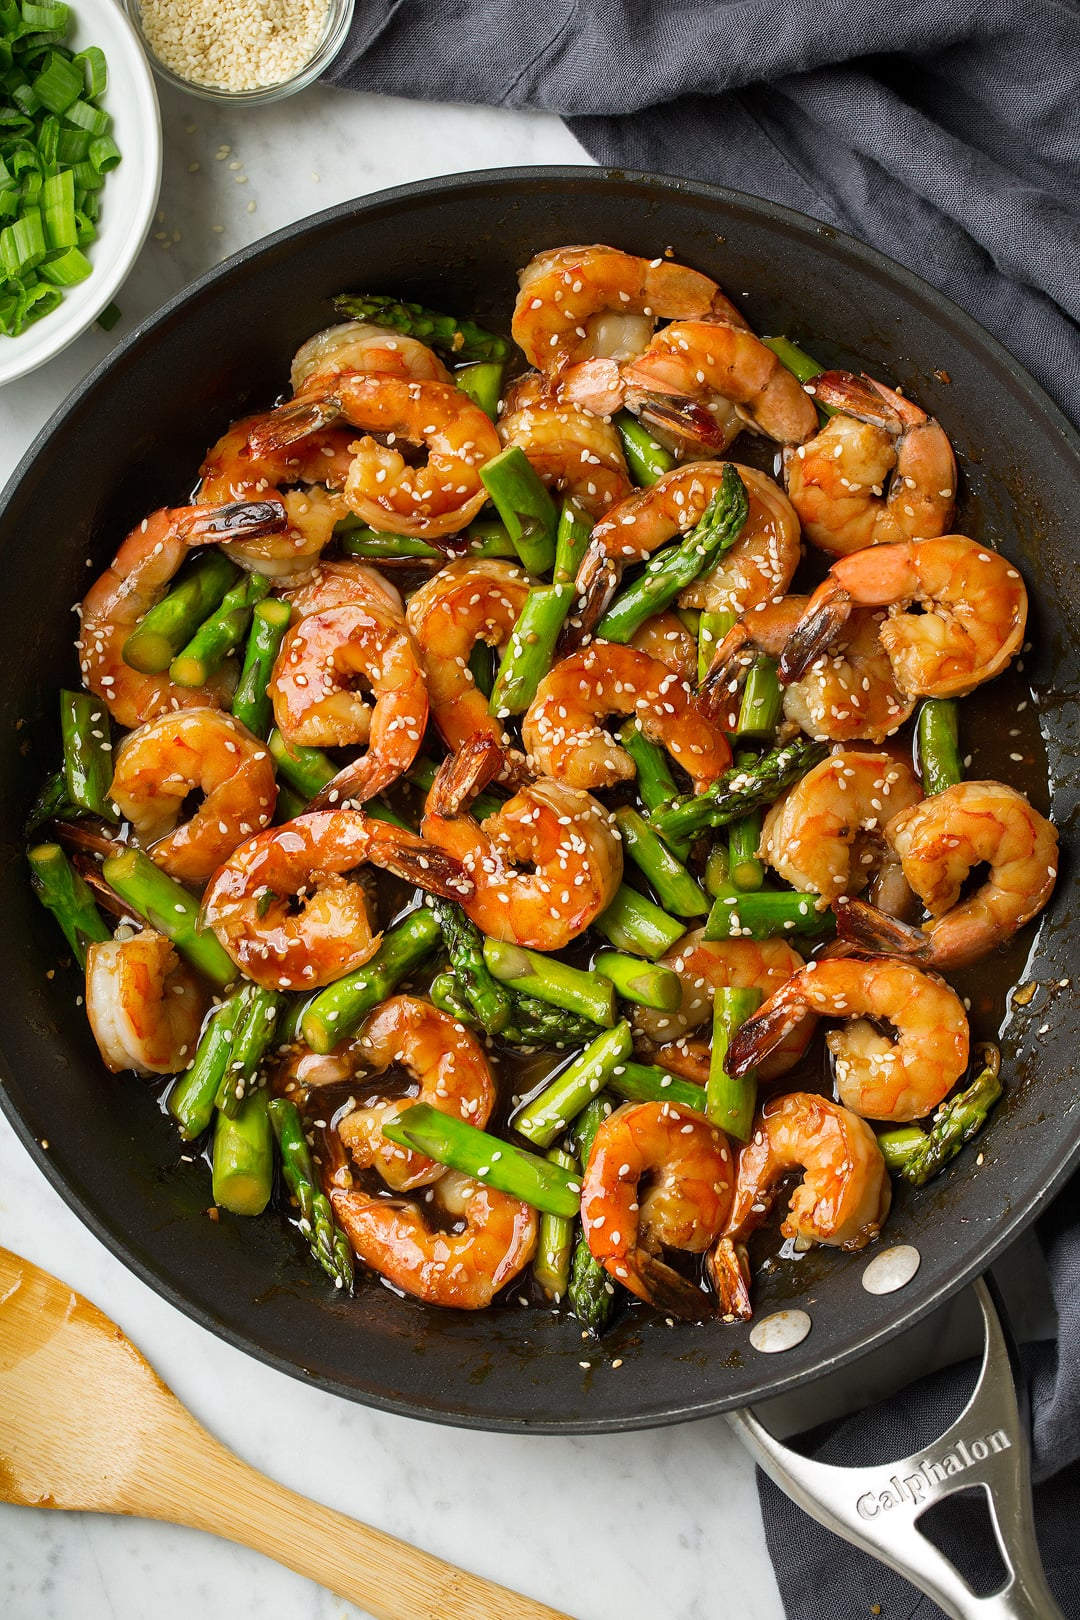 teriyaki shrimp and asparagus in a metal skillet with wooden spoon